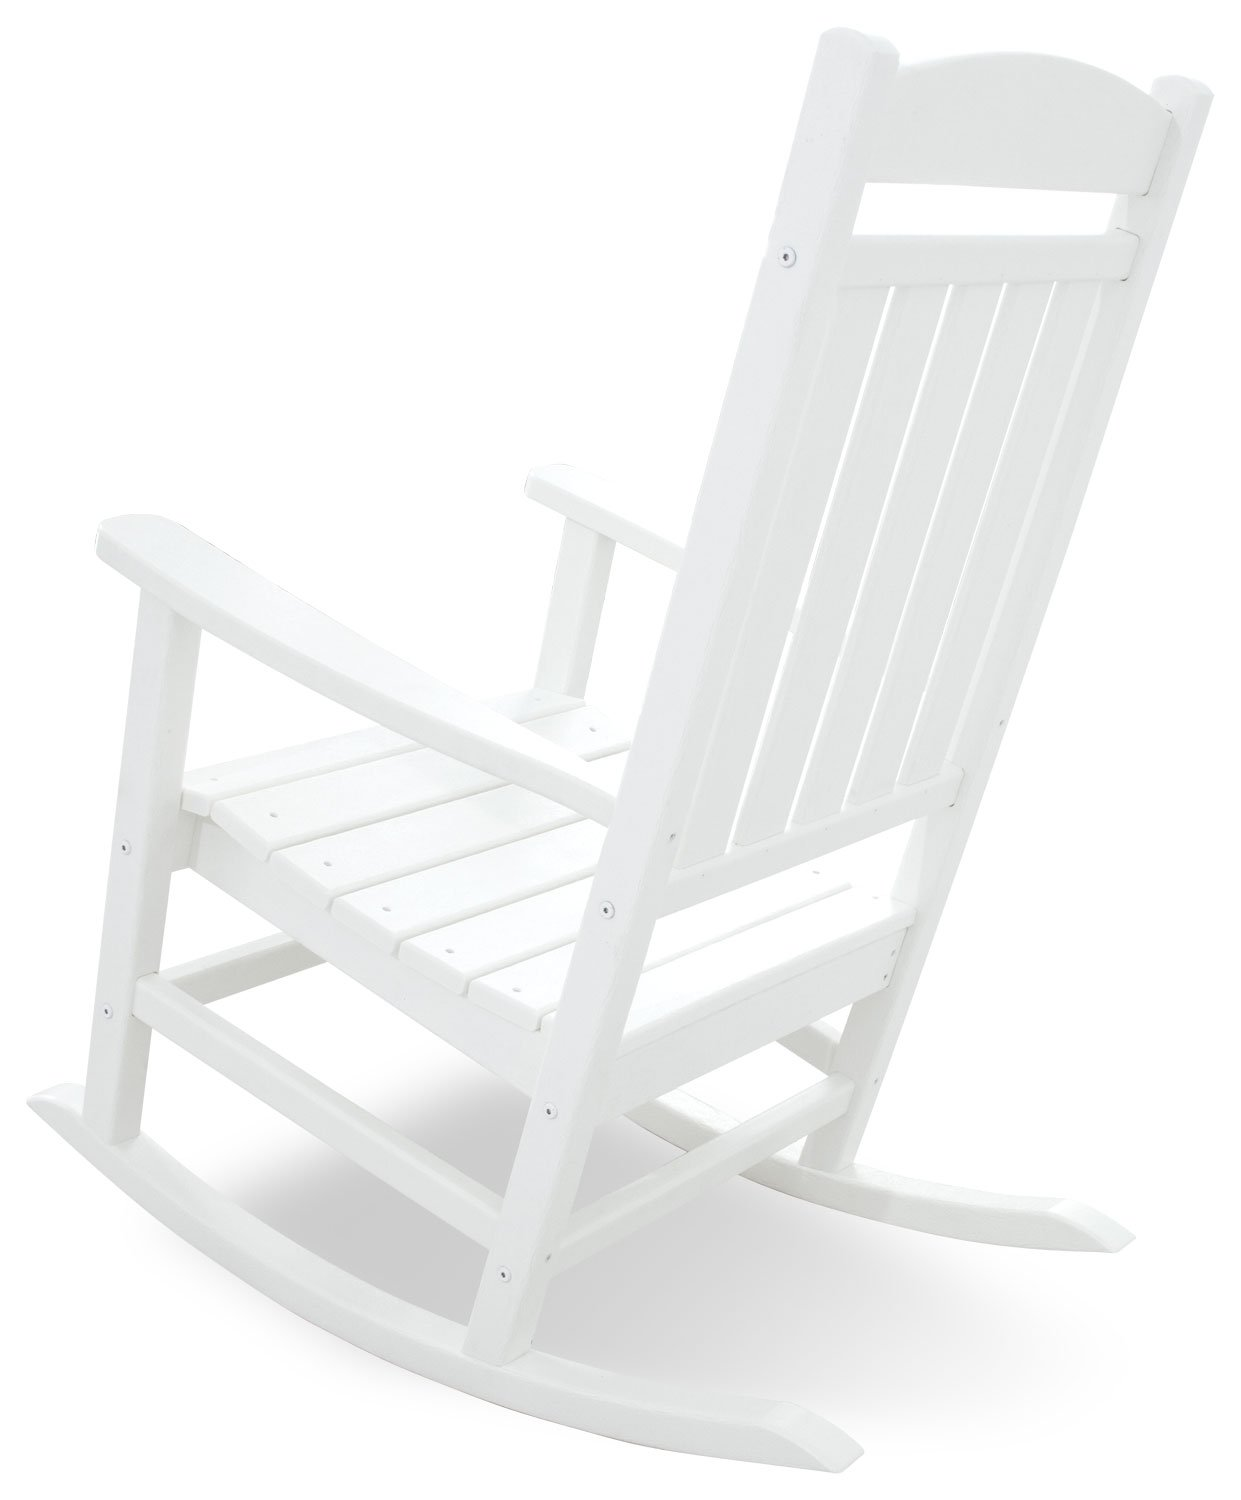 Rocking chair coloring page free rocking chair online coloring - Amazon Com Ivy Terrace Ivr100wh Classics Rocker Chair White Patio Rocking Chairs Patio Lawn Garden